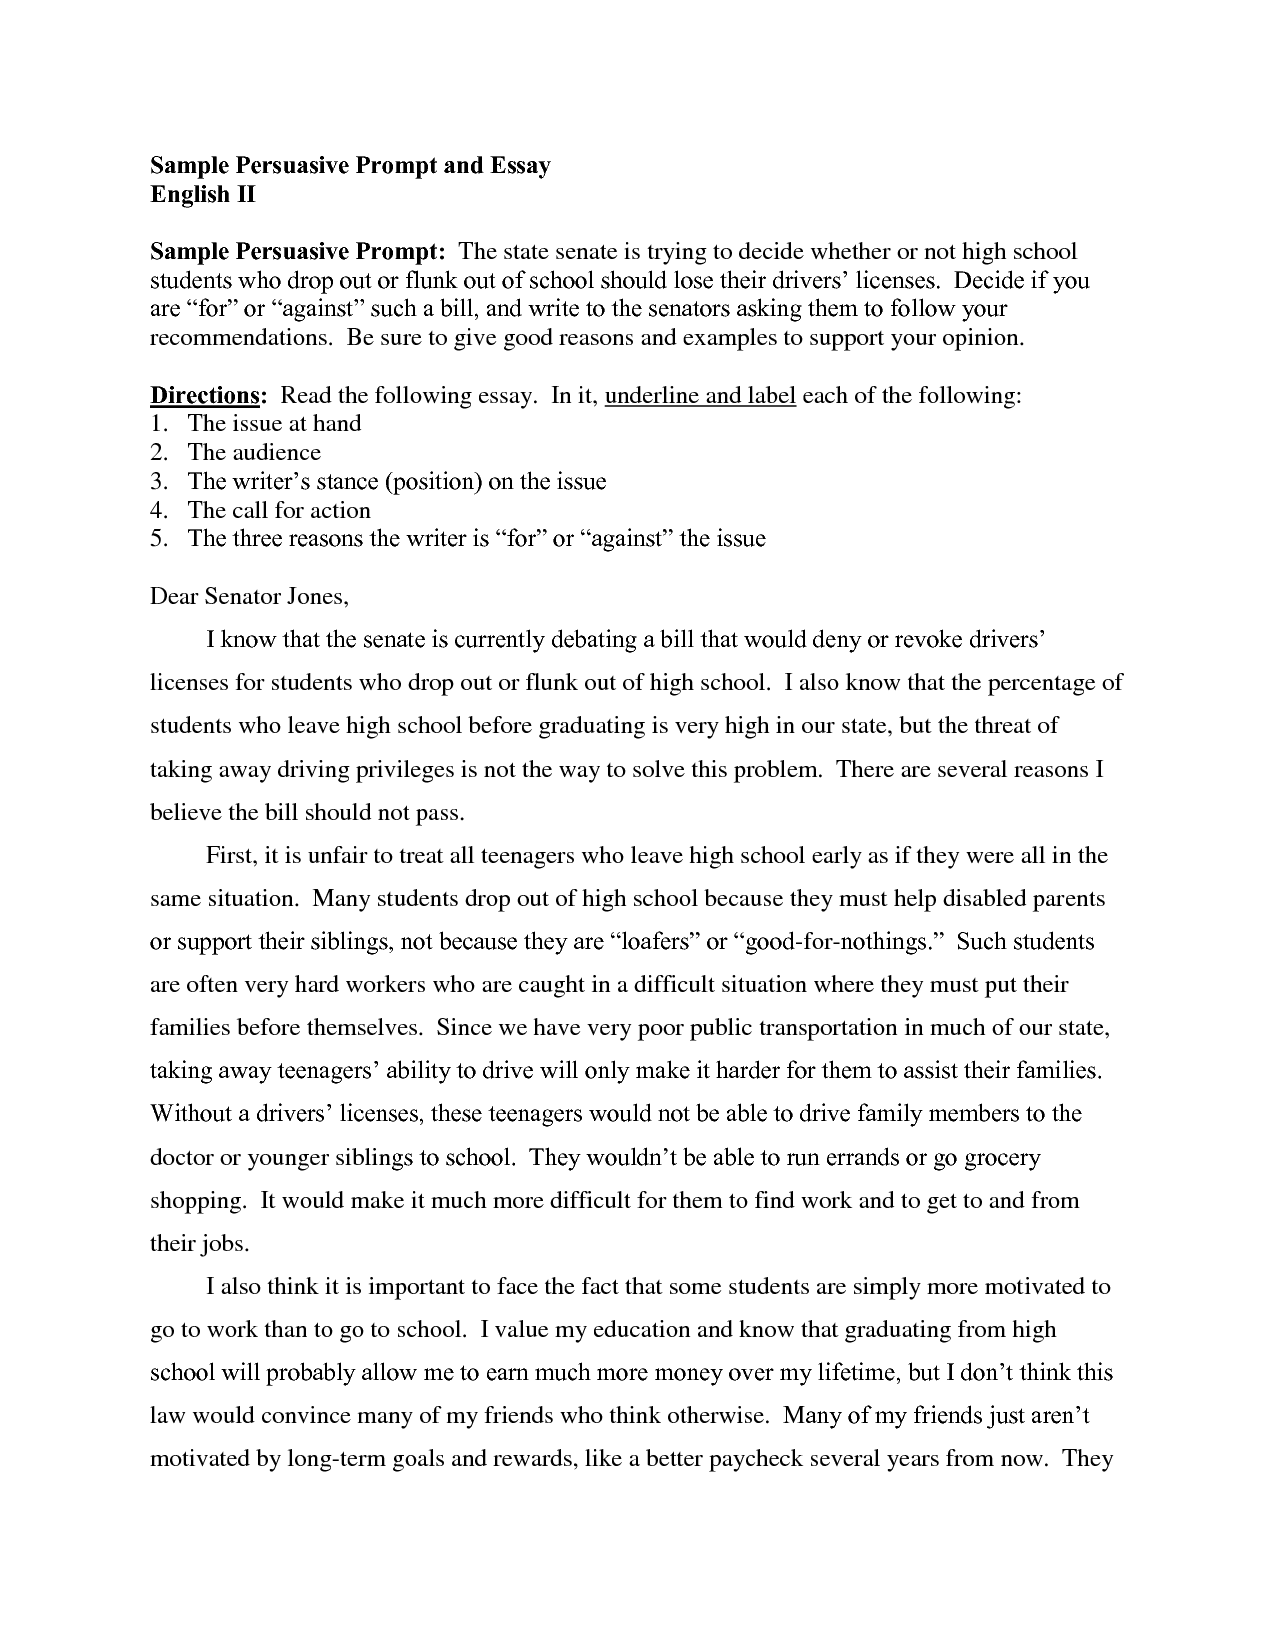 022 Research Paper Argumentative Topics Example Persuasive Essay For High School Sample Ideas Highschool Students Good Prompt Funny Easy Fun List Of Seniors Writing English Top Full